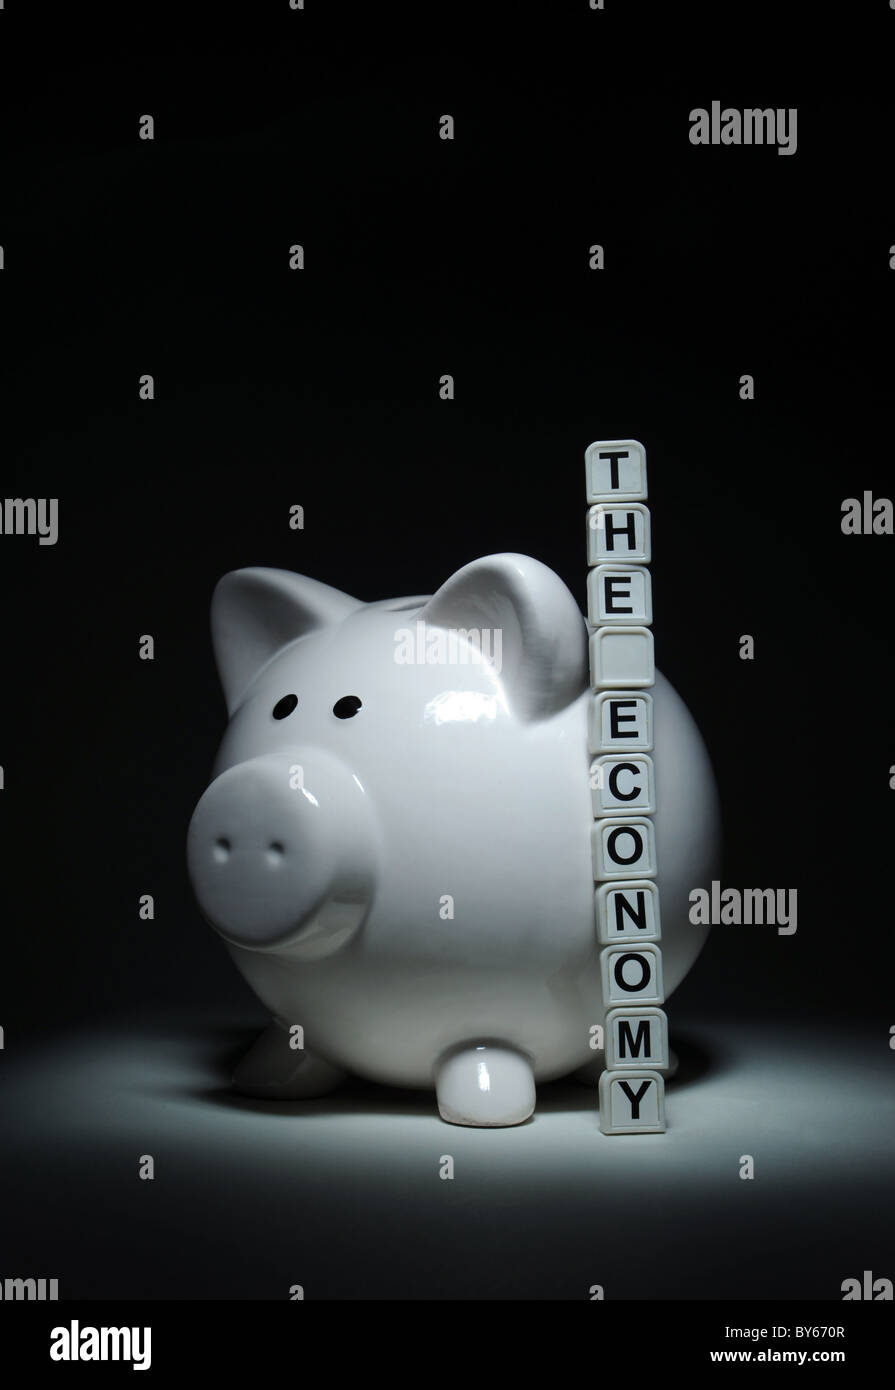 PIGGYBANK WITH WORD TILES SPELLING THE ECONOMY RE ECONOMIC SITUATION BANKS MORTGAGES HOMES FINANCES  SAVINGS HOUSEHOLD - Stock Image